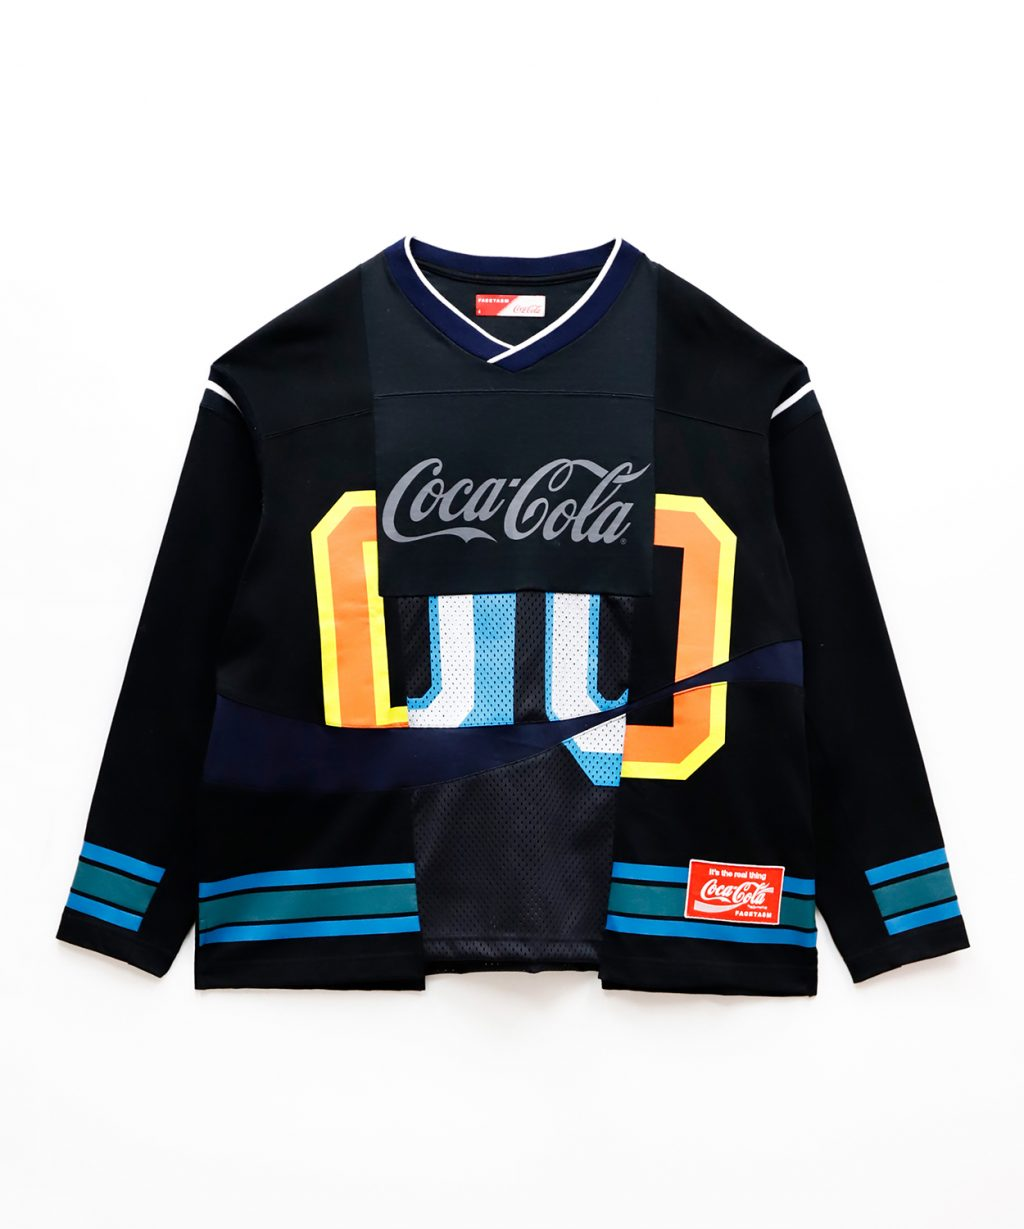 COCA-COLA-MIX-FOOTBALL-LONG-TEE-black1-1024x1229.jpg